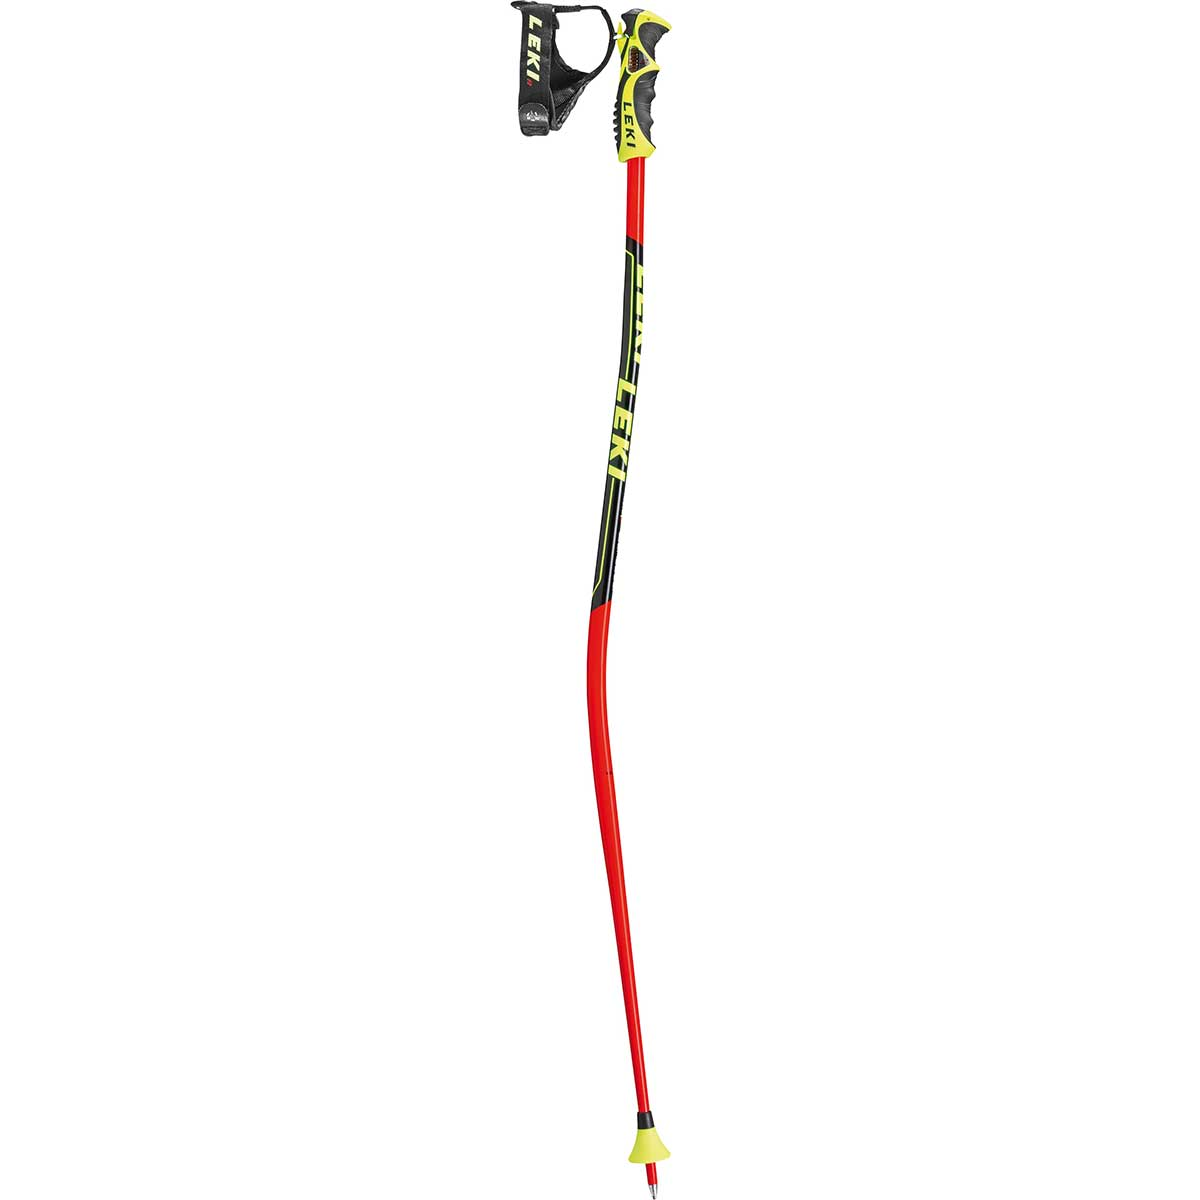 Leki Worldcup Lite GS Trigger S Race Pole in one color